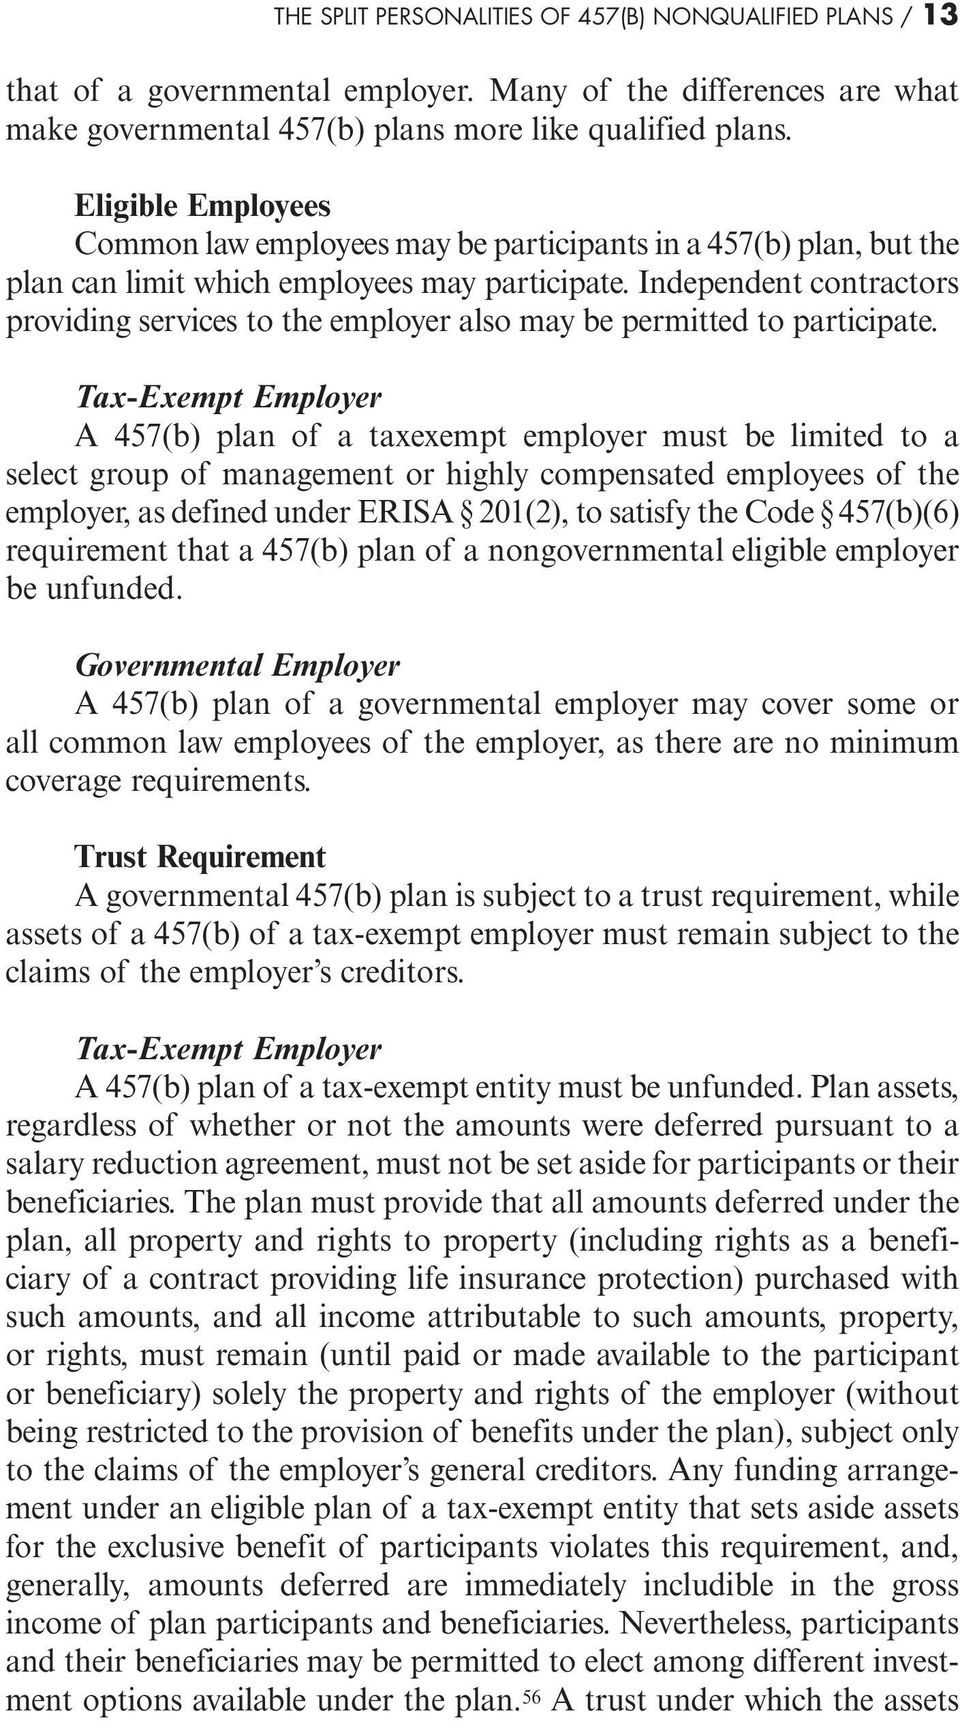 Independent contractors providing services to the employer also may be permitted to participate.